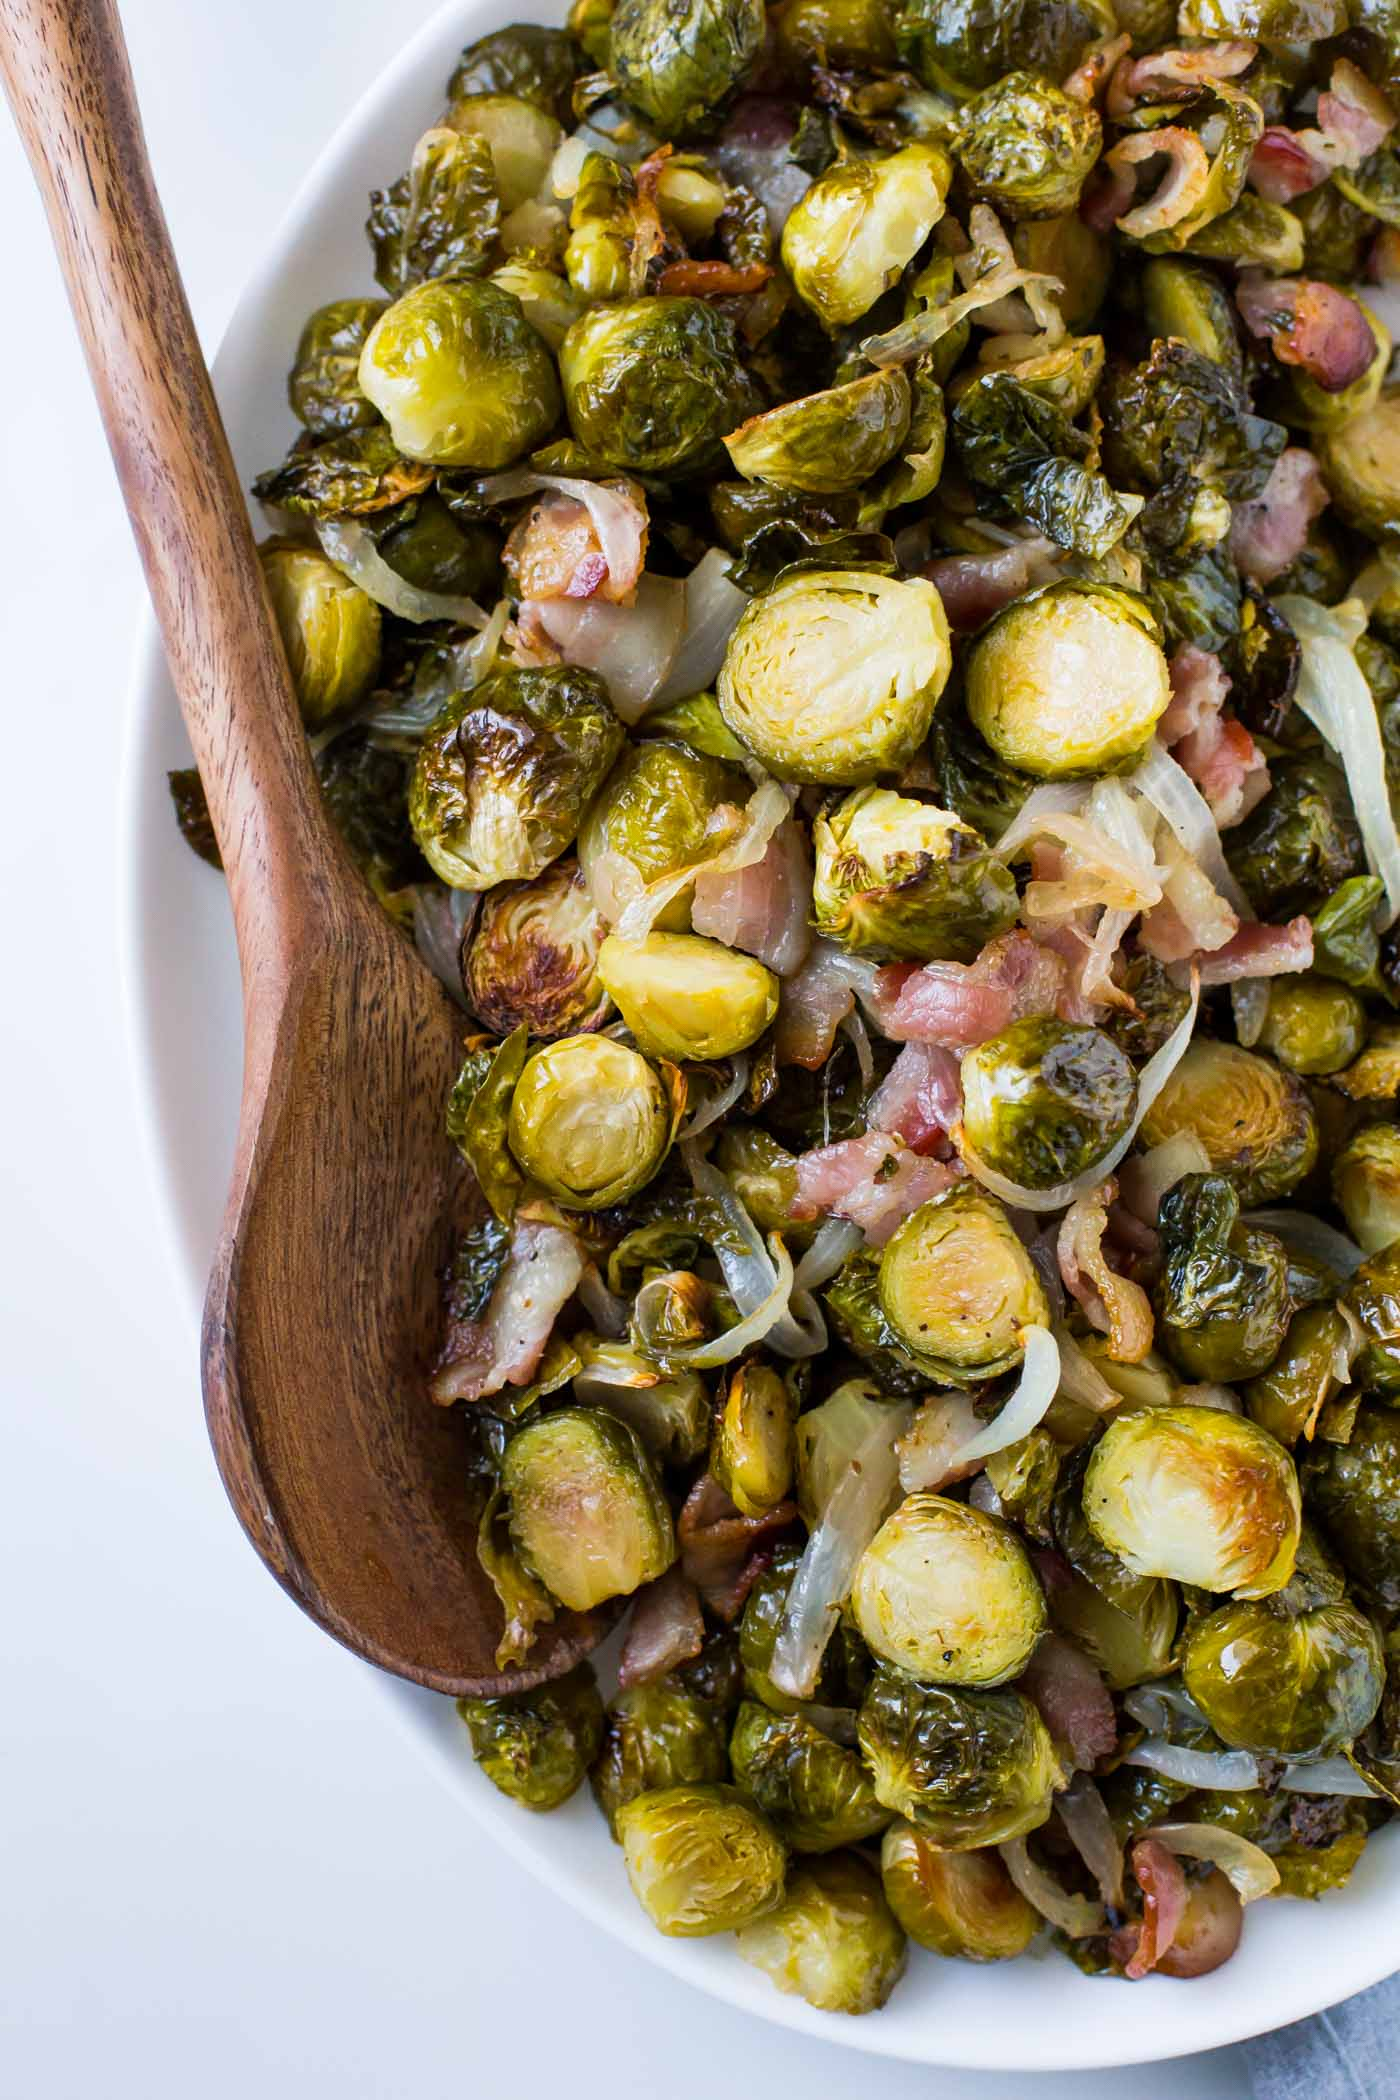 Maple roasted brussels sprouts with bacon, and onions on a white plate with a wooden spoon